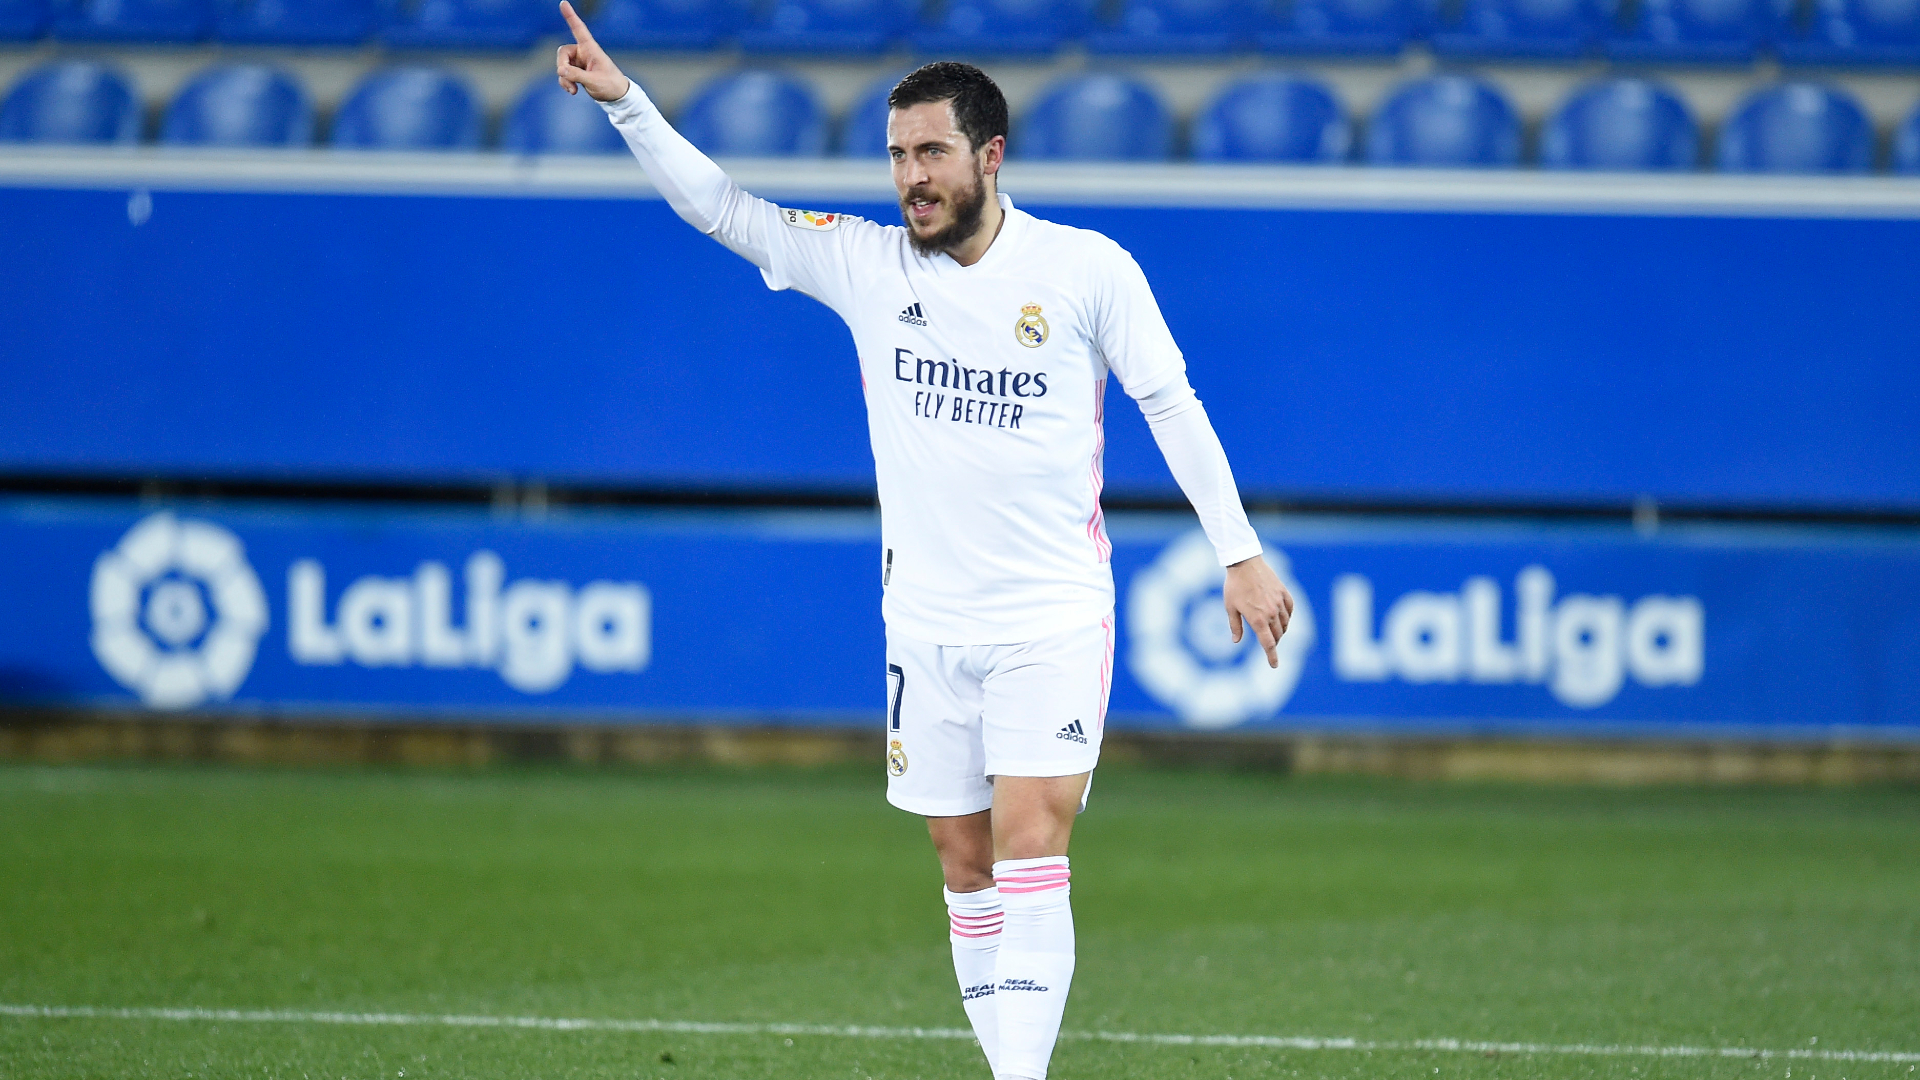 Zidane's assistant Bettoni urges patience with goalscorer Hazard at Real Madrid